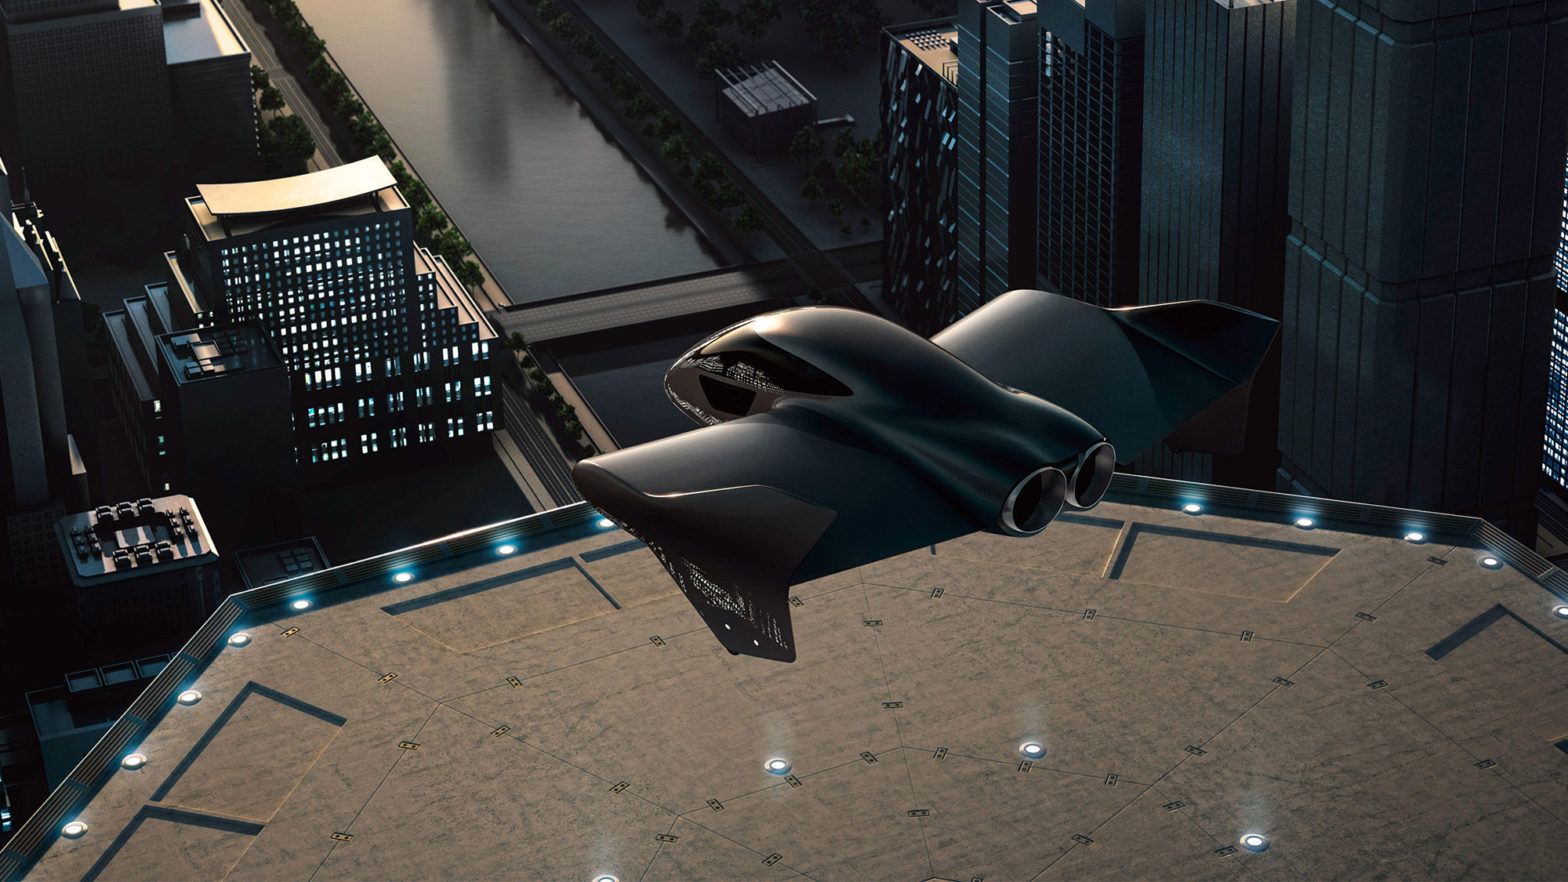 Porsche x Boeing Urban Air Mobility Vehicle